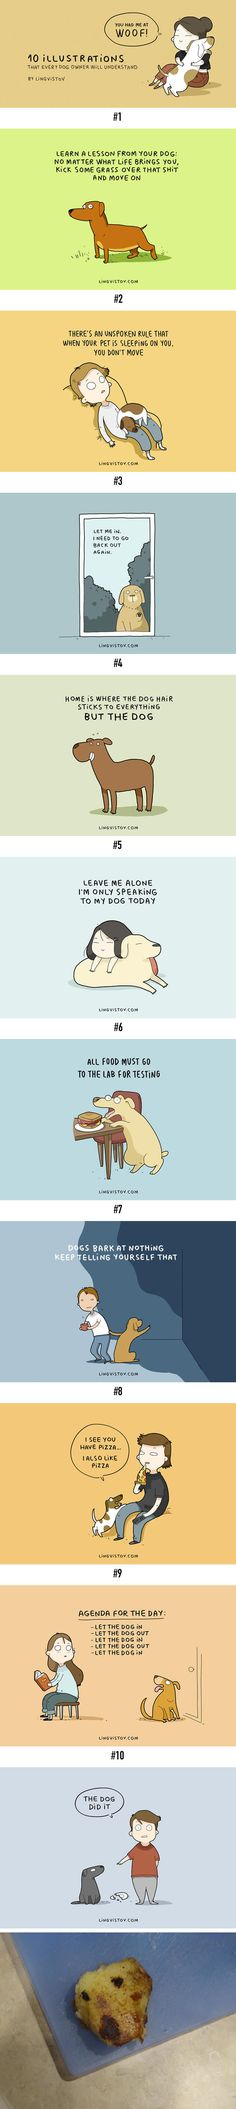 10 Illustrations Every Dog Owner Will Understand - 9GAG